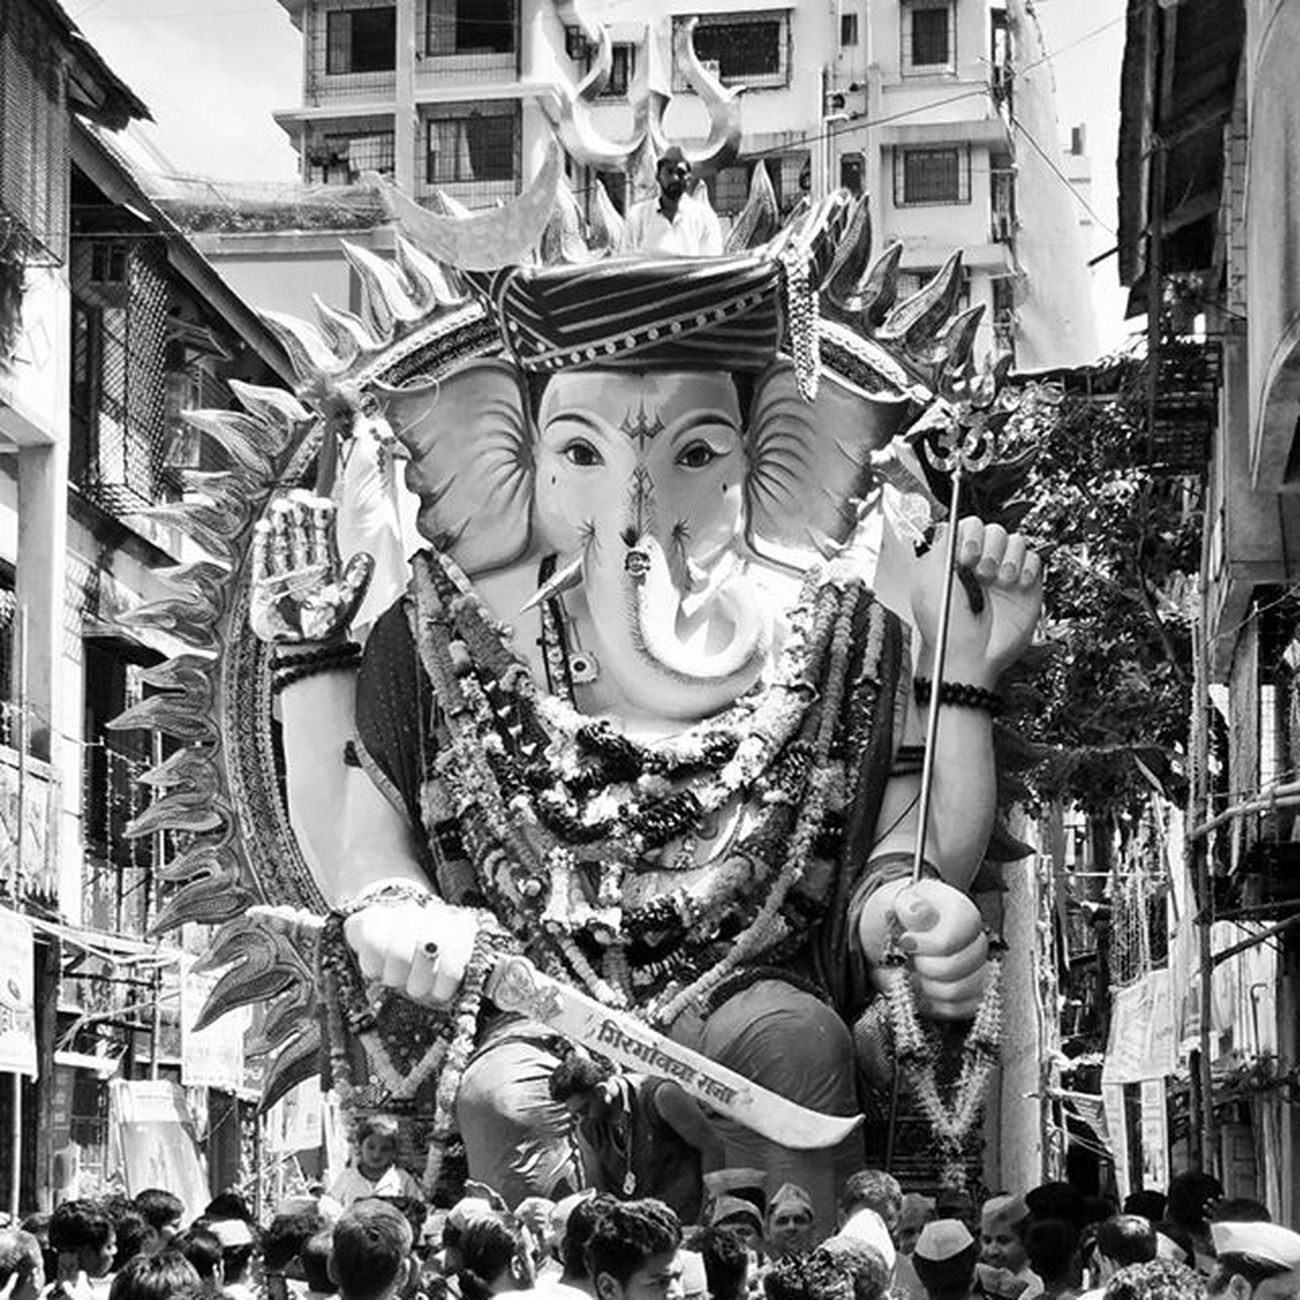 Girgaumcha Raja !!!! GanpatiBappaMorya Pudhchyavarshilavkarya Blackandwhite Bw_lover Monochrome Monochromatic Oneplusphotography Mumbai_igers Everydaymumbai Androidography Mymumbai Thingstodoinmumbai Phonography  Iger Mumbaikars Bw_society _soi Indiapictures Bnw_captures Picoftheday PicturePerfect Idol Hinduism LordGanesha Everytimephotos